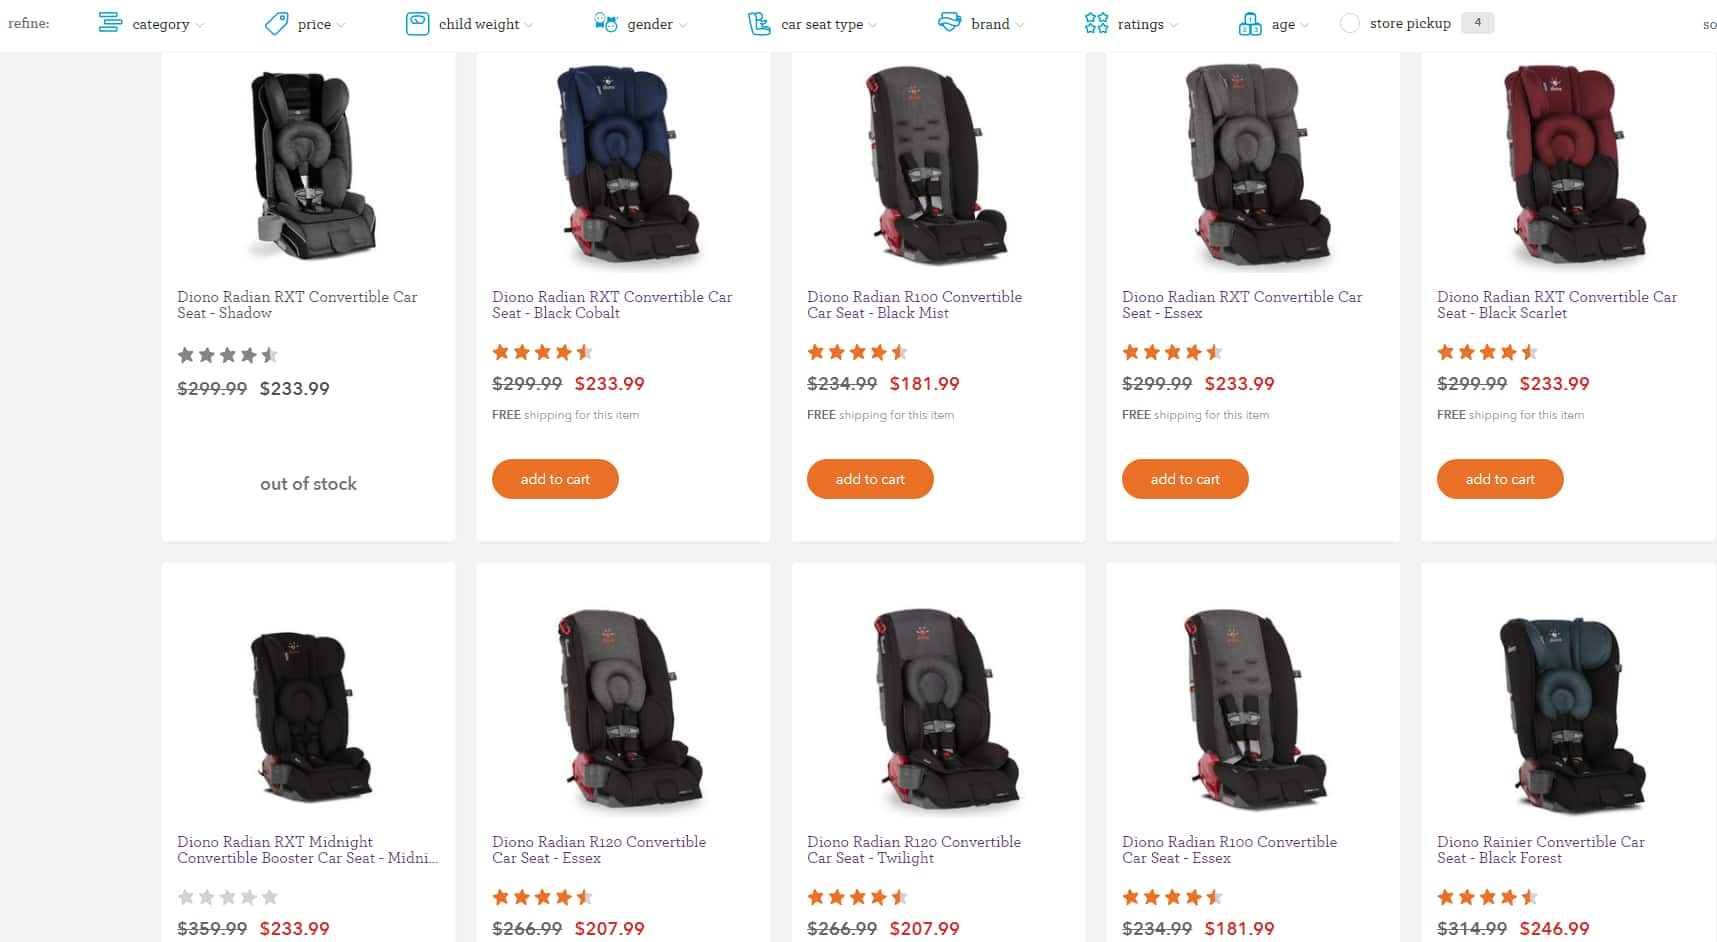 Diono Carseats 21-33% Off, Free Shipping $181.99